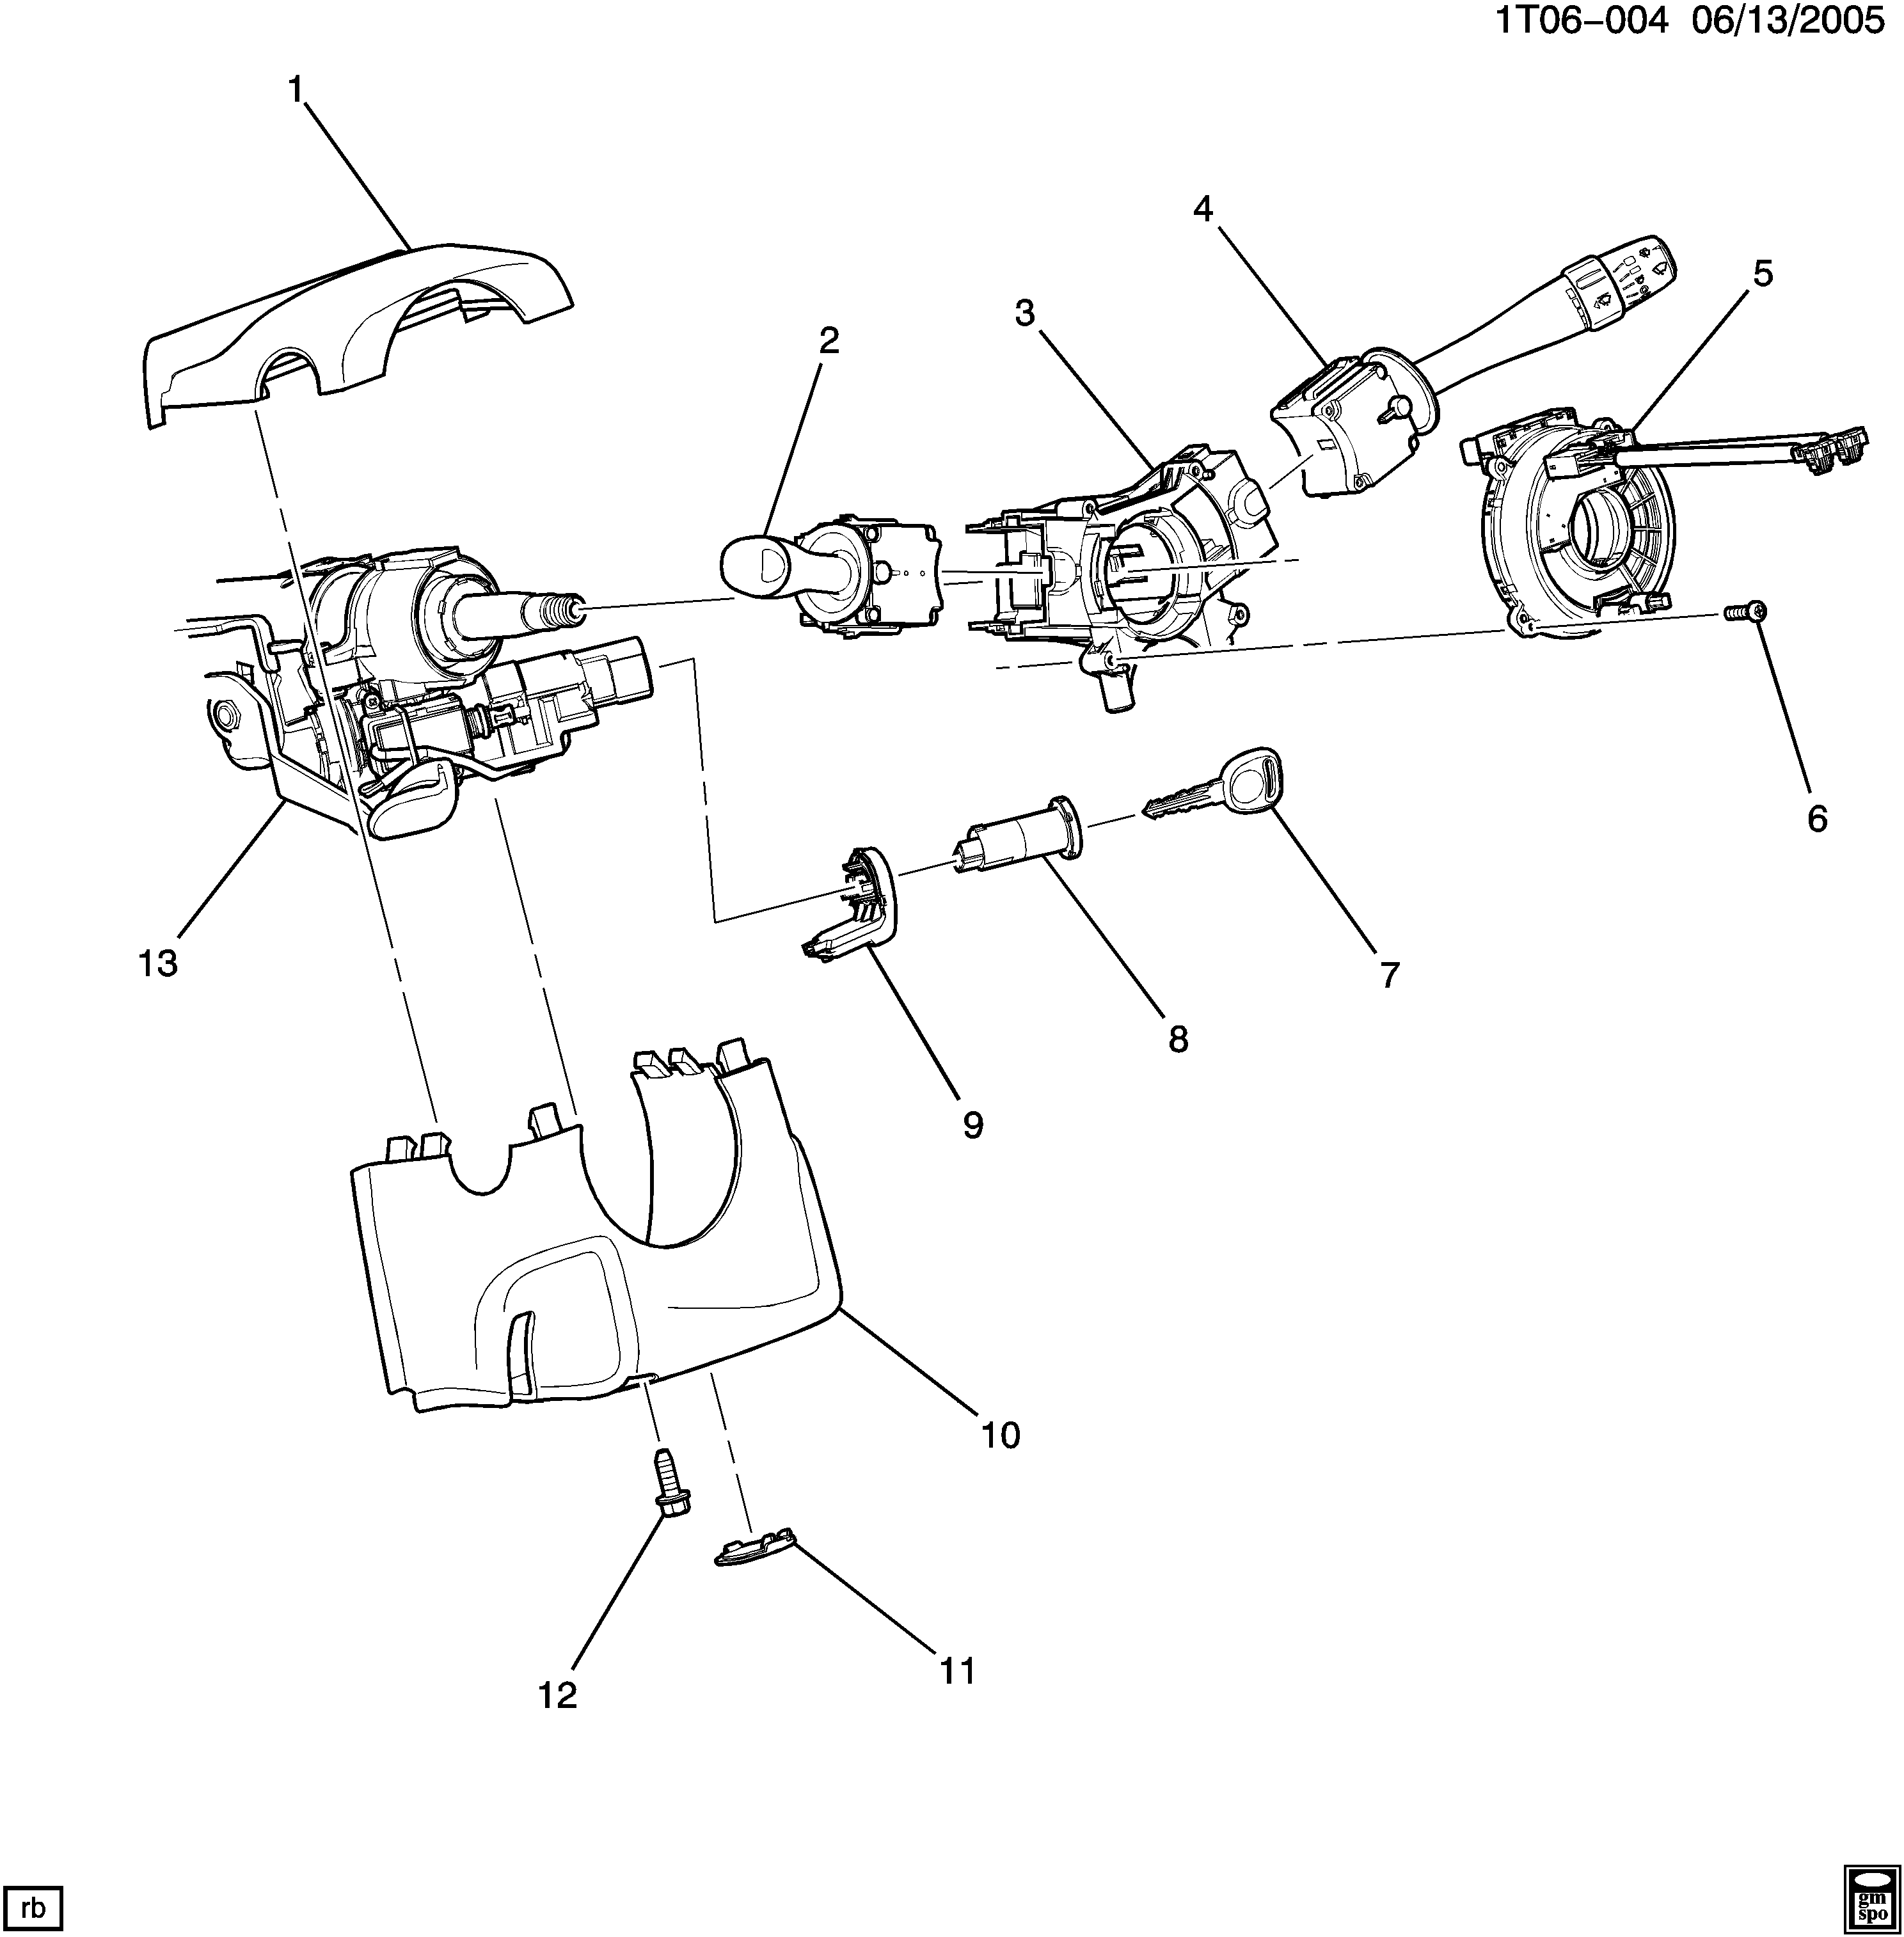 2006 Hhr Engine Diagram Wiring Library 2011 Chevy A Steering Column Part 2 Cover Switches Chevrolet